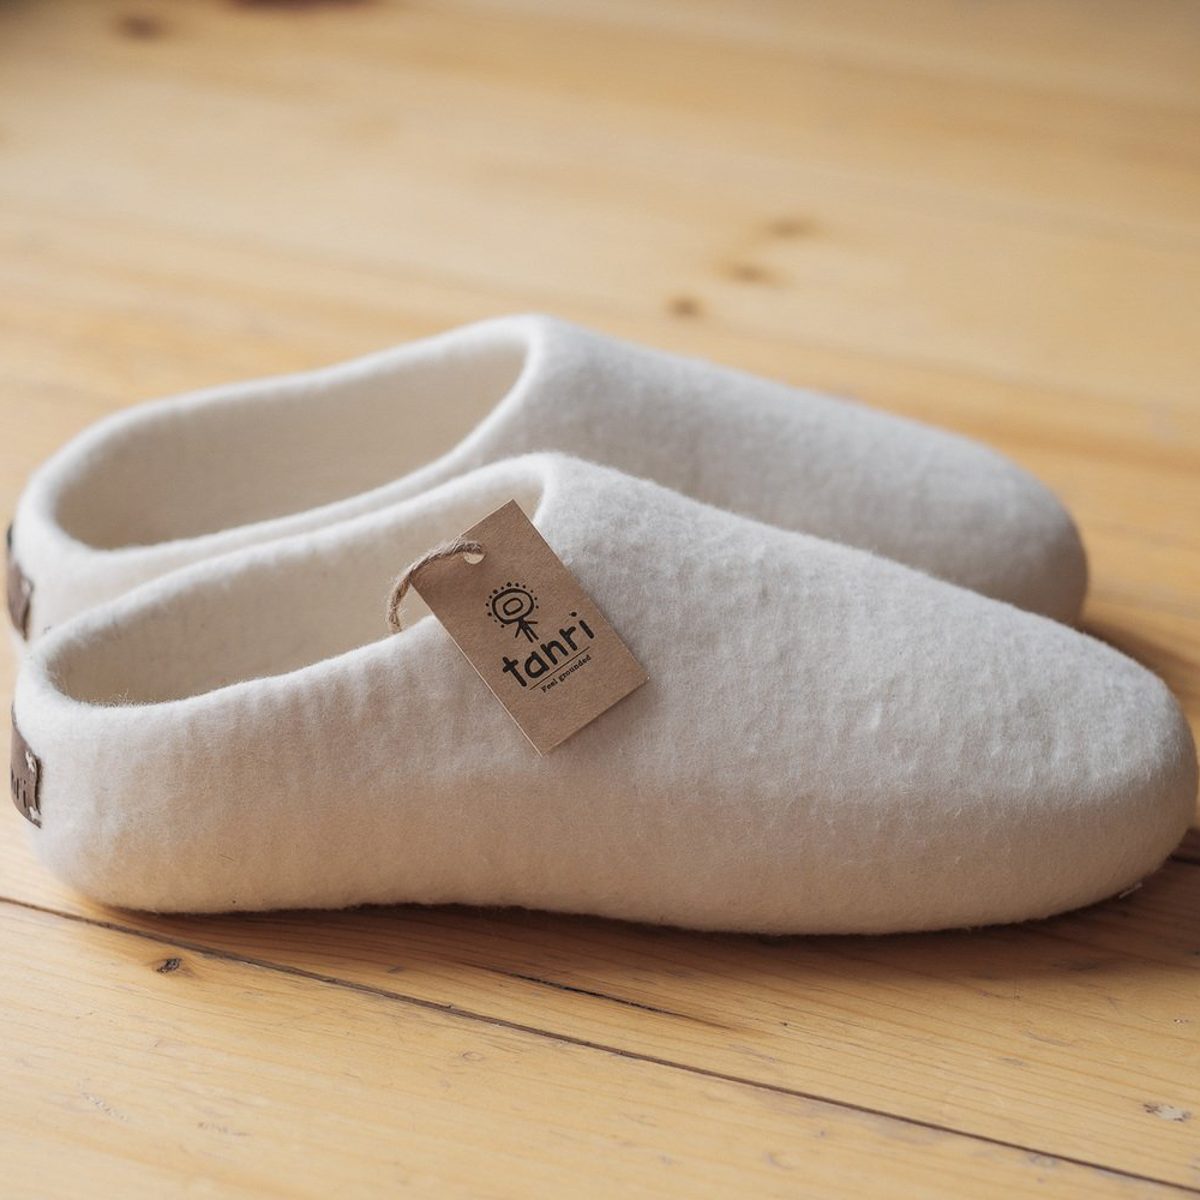 Tanri slippers with hang tag